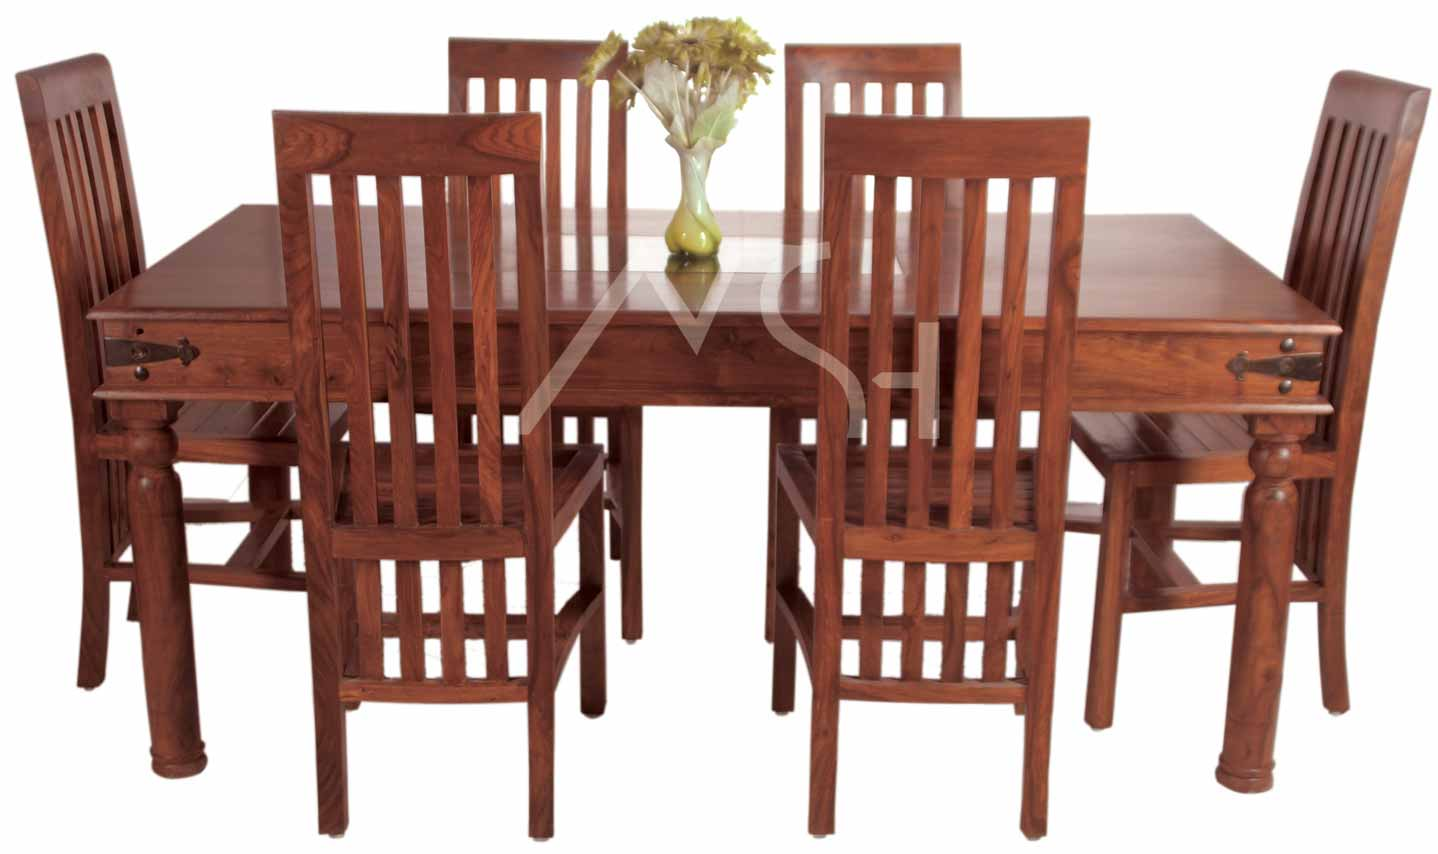 Fancy Furnitures Sofa Teapoy amp Dining table : SFFDining1 from fansyfurniture.blogspot.com size 1438 x 854 jpeg 64kB